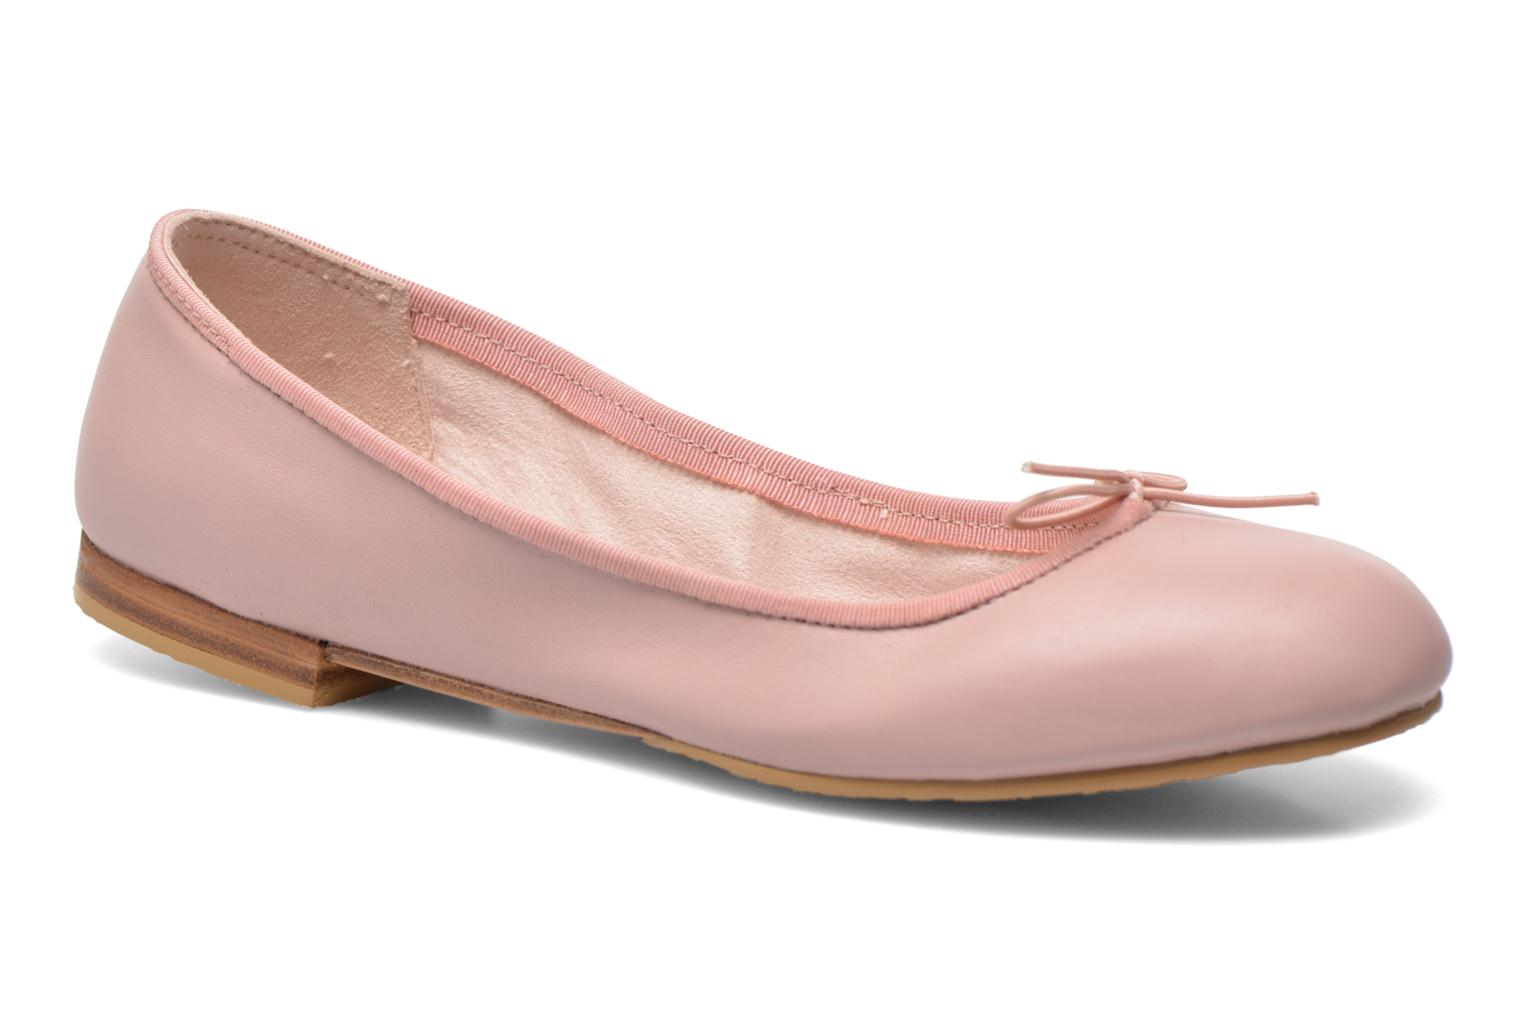 ALAIR BALLERINA Old Rose